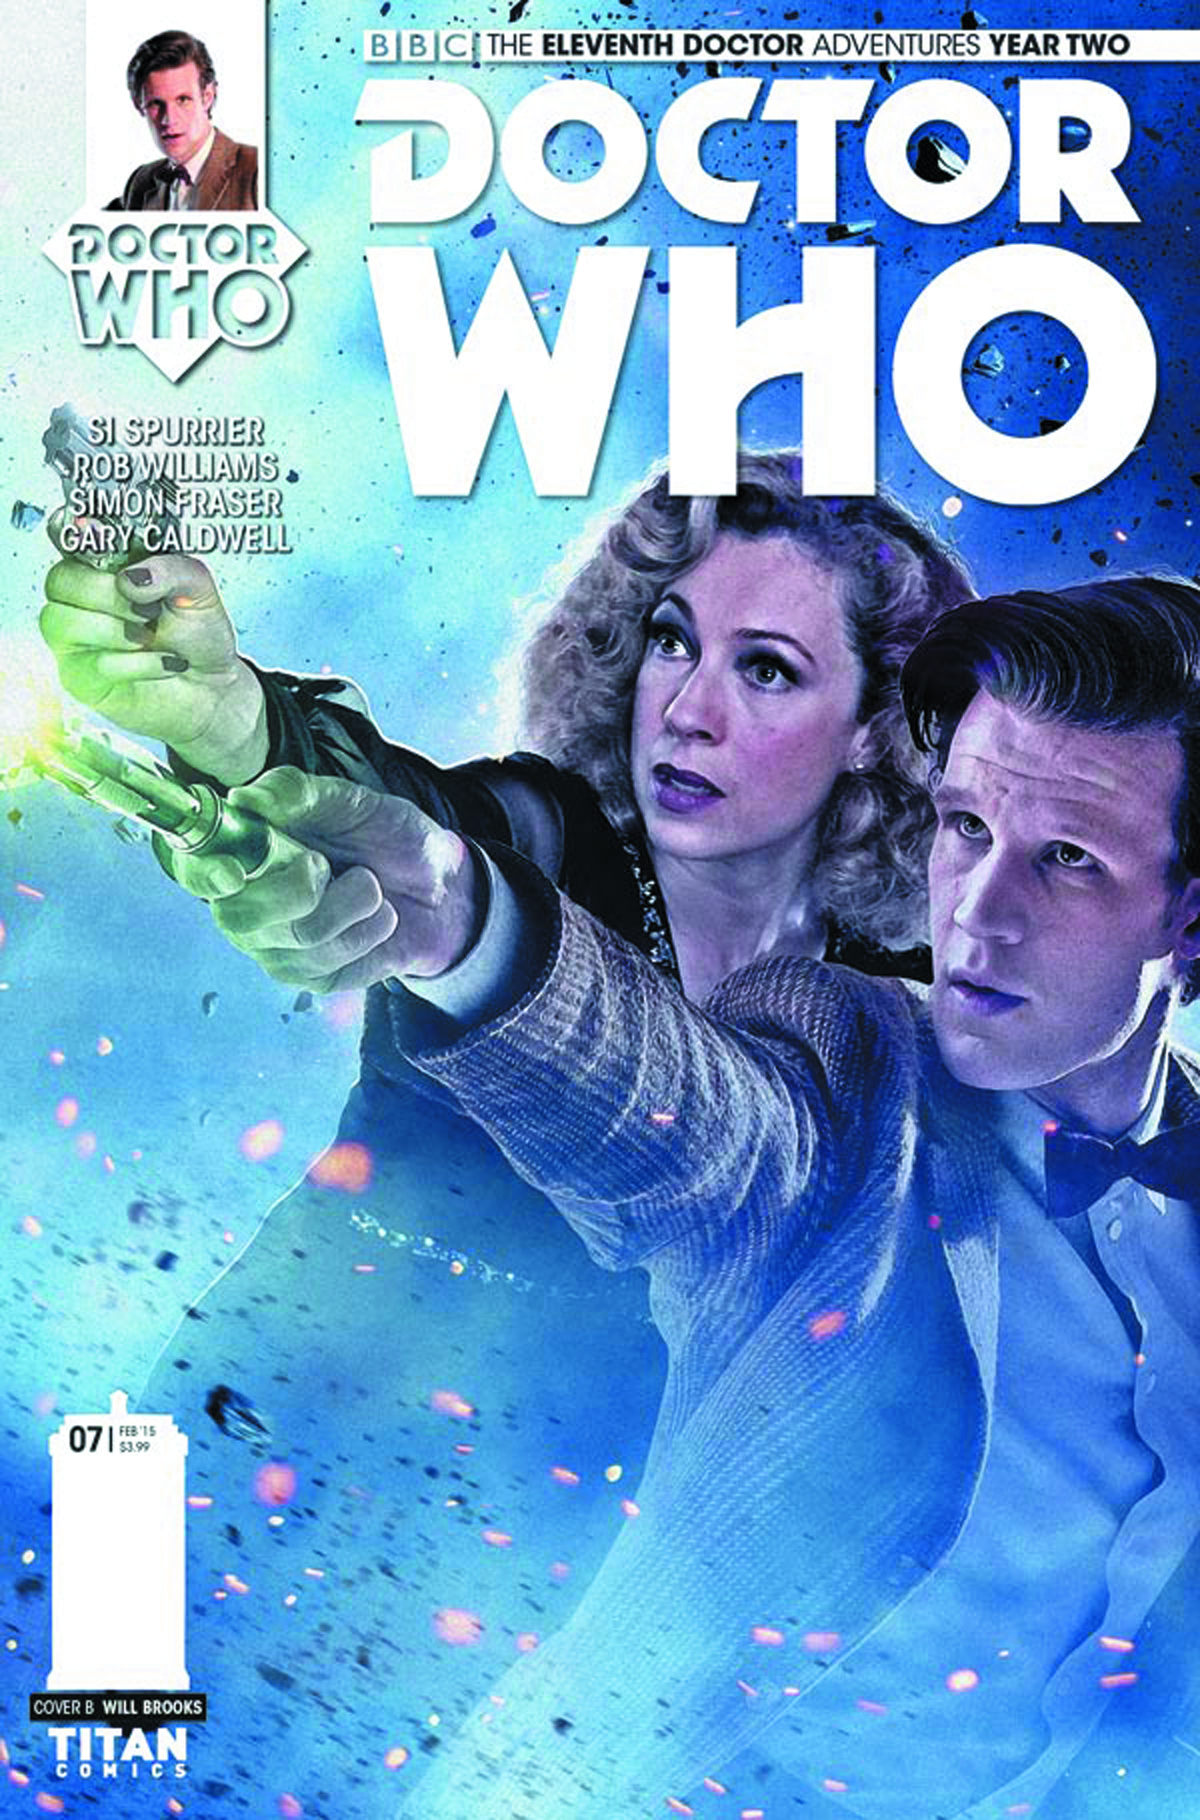 DOCTOR WHO 11TH YEAR TWO #7 CVR B PHOTO